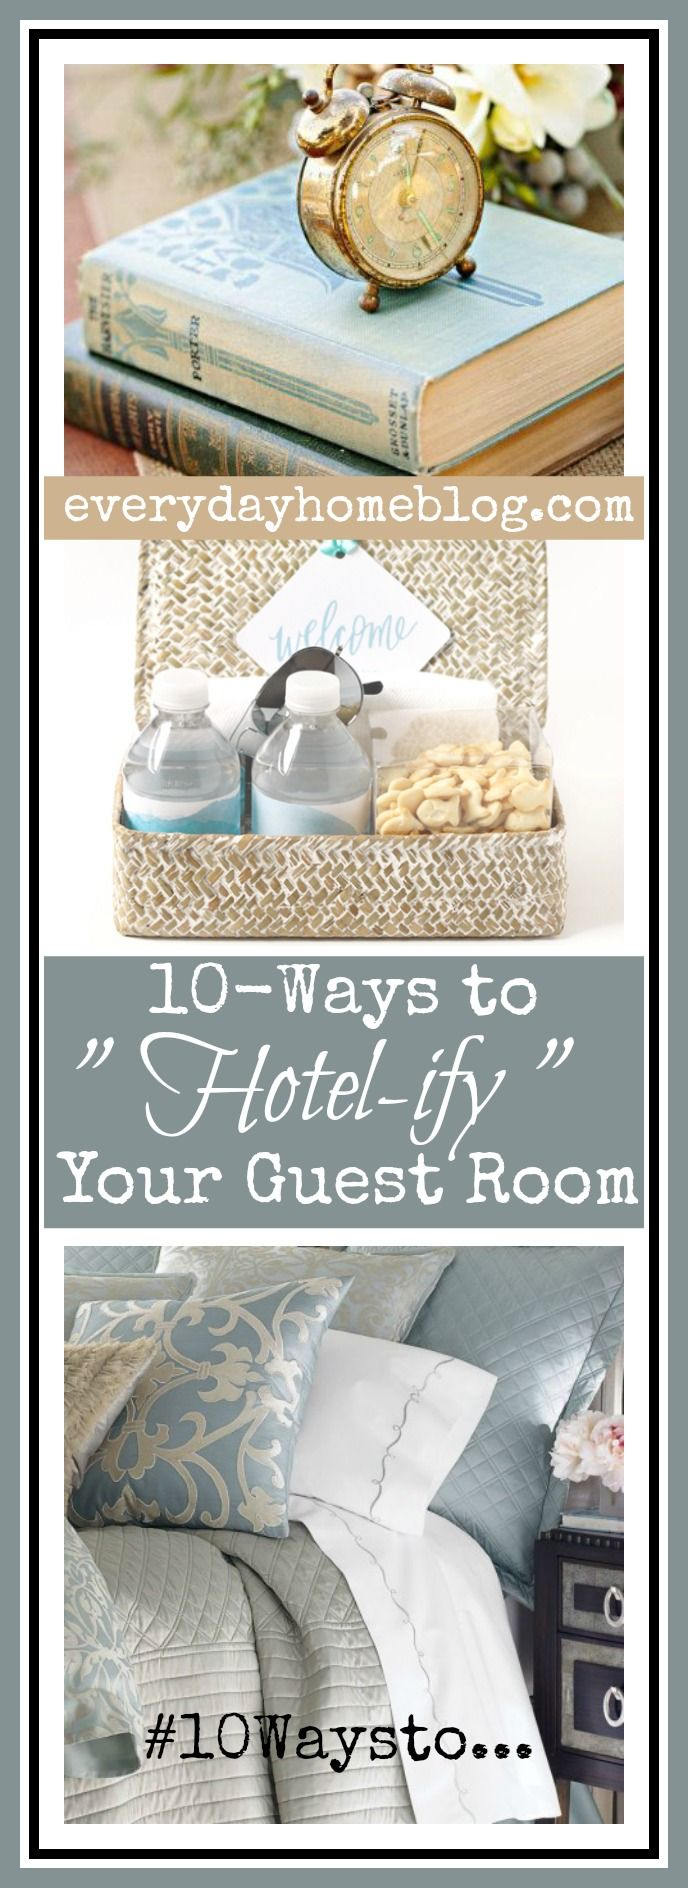 "Several weeks ago, I shared  10-Ways to ""Hotel-ify"" Your Guest Bath. I thought it would be a great time to share the ways  I also prepare my Guest Rooms to make\sure my guests feel right at home. 10-Ways to ""Hotel-ify"" Your Guest Room   1) Linens/Bedding Honestly there is no shortcut when it comes to bedding. …"